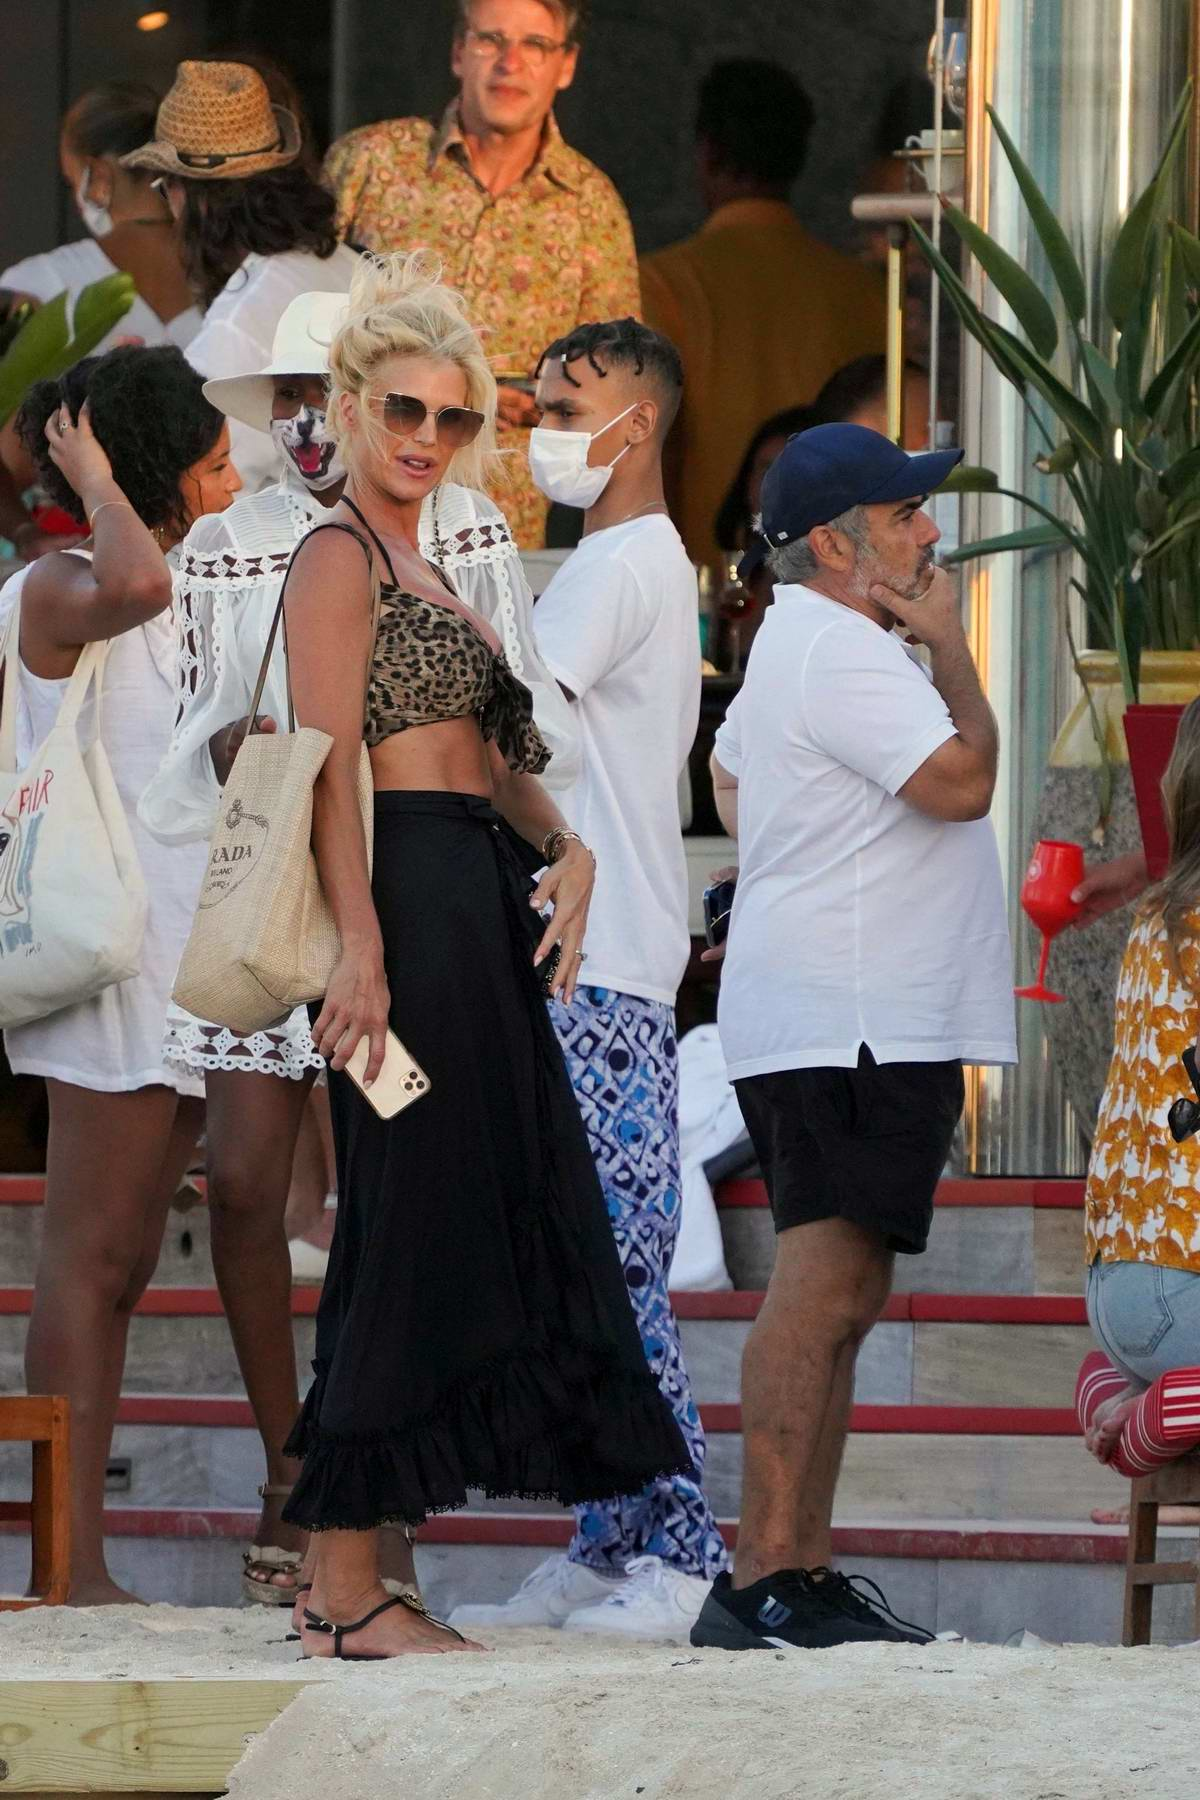 Victoria Silvstedt and boyfriend Maurice Dabbah meet with friends at Eden Rock hotel in St Barth, France